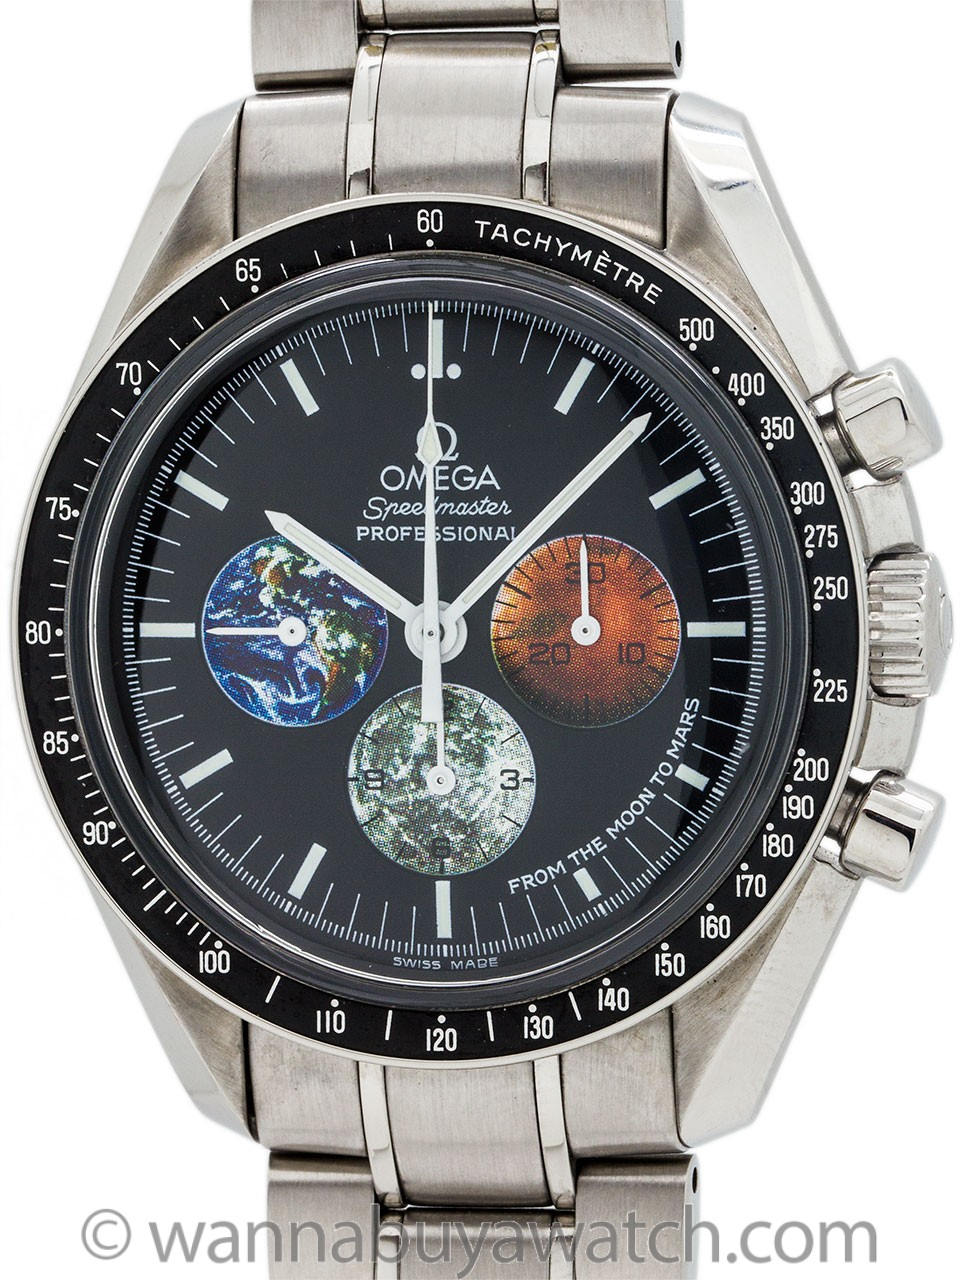 Omega Speedmaster Moon to Mars Mission ref 3577.50.00